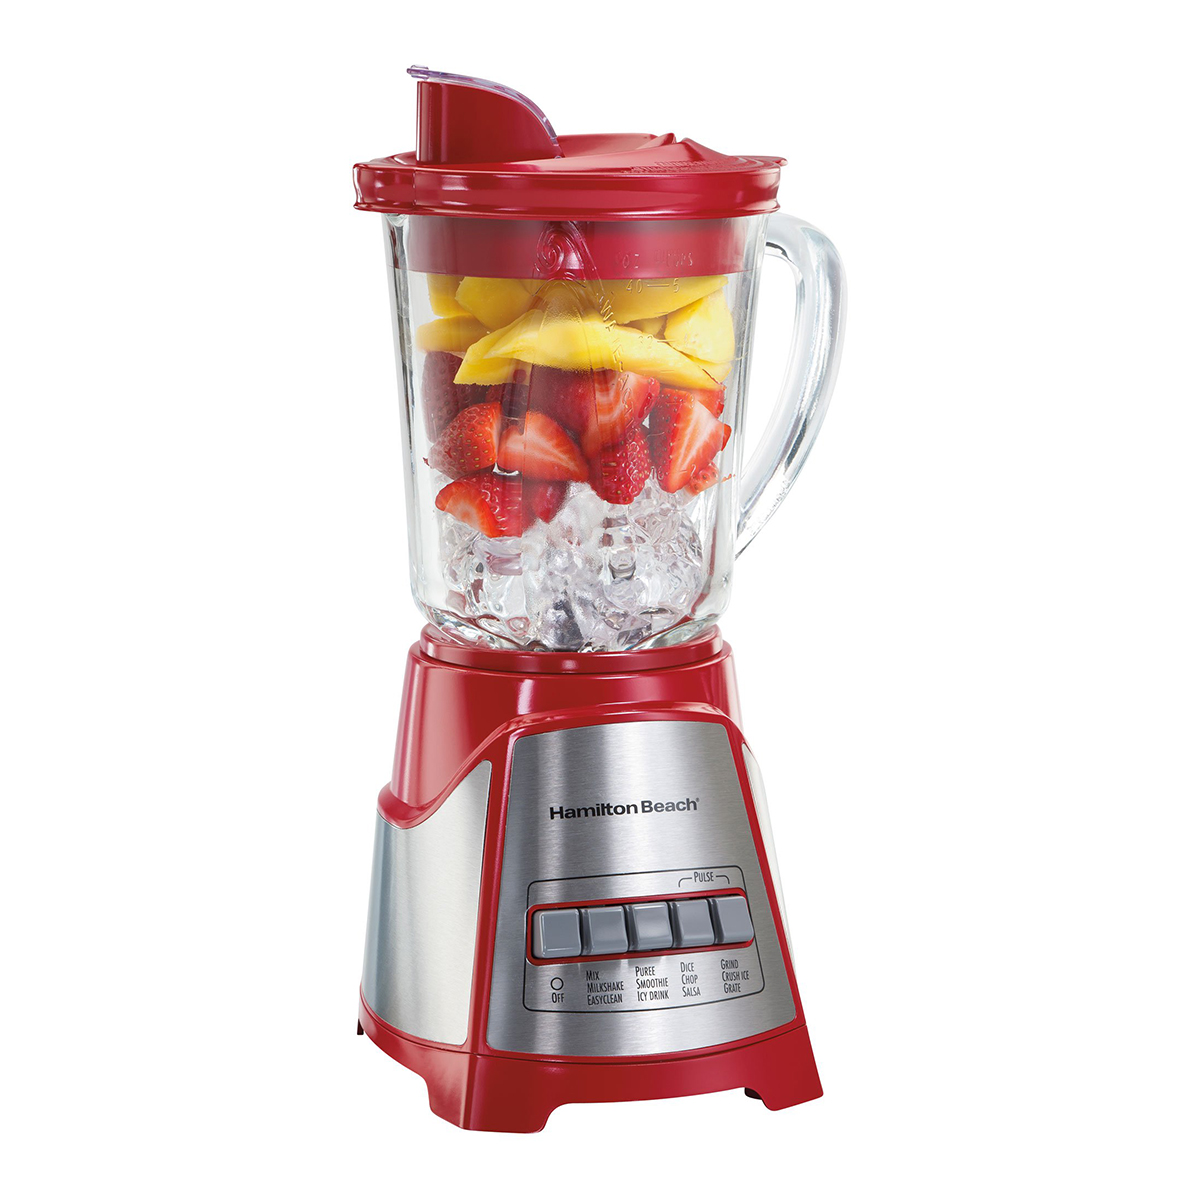 Hamilton Beach Power Multi-Function Blender